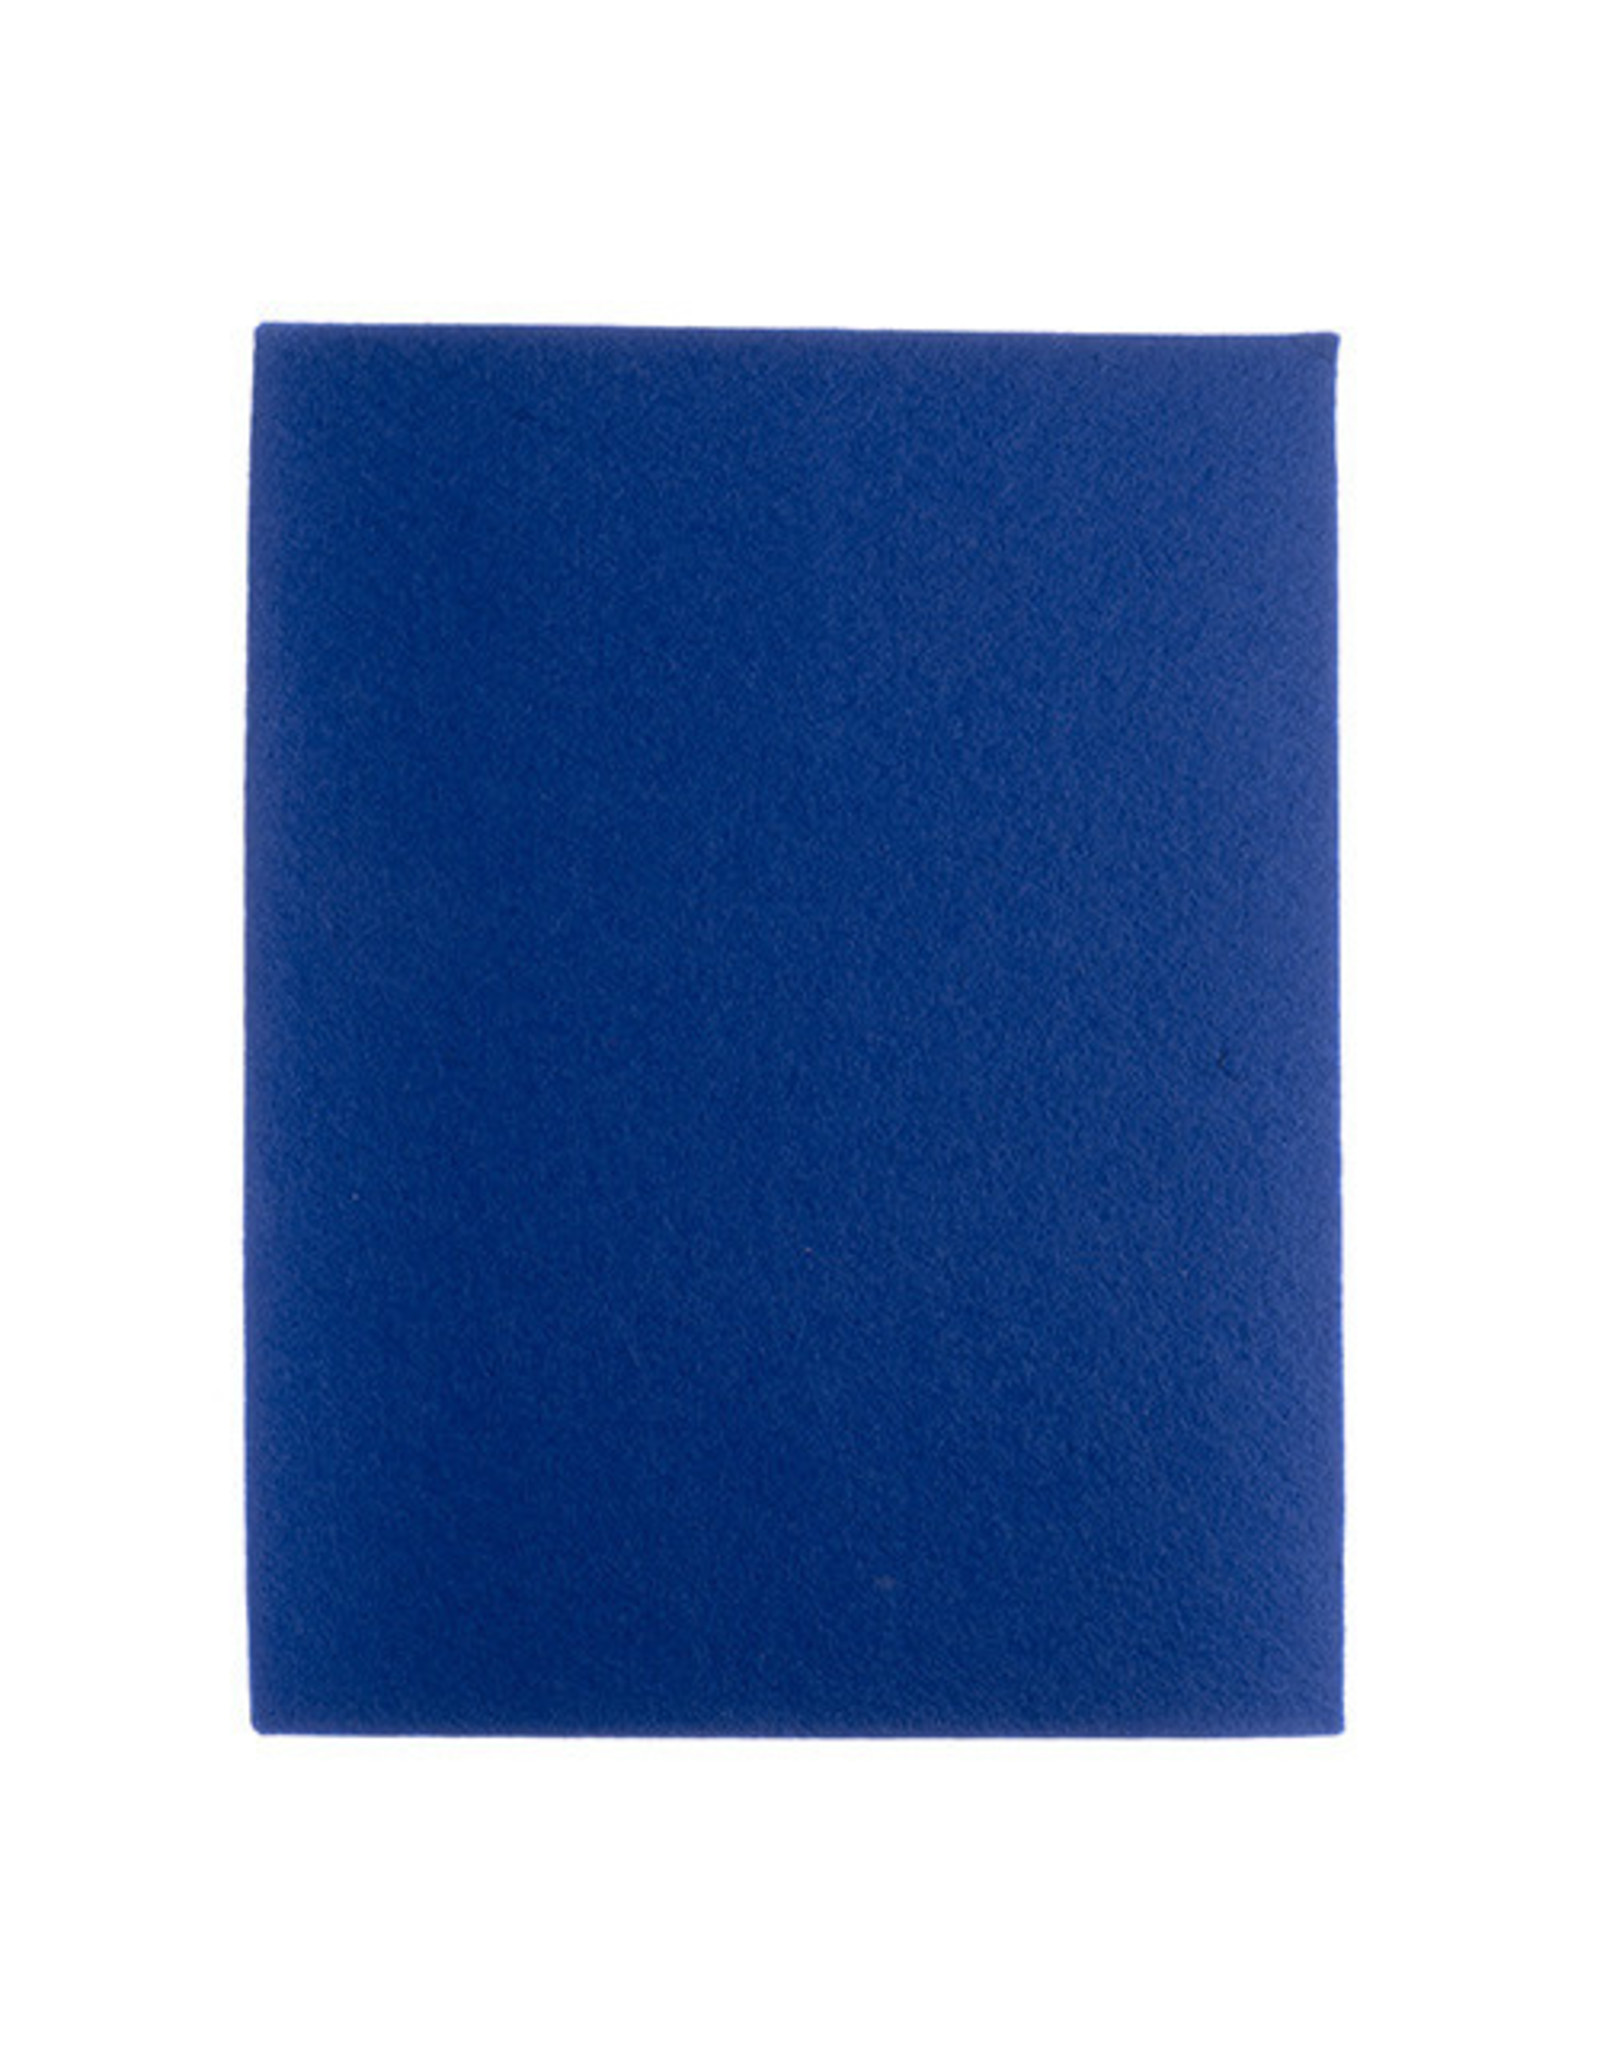 Felt Beading Foundation Blue 1.5mm thick 8.5x11""